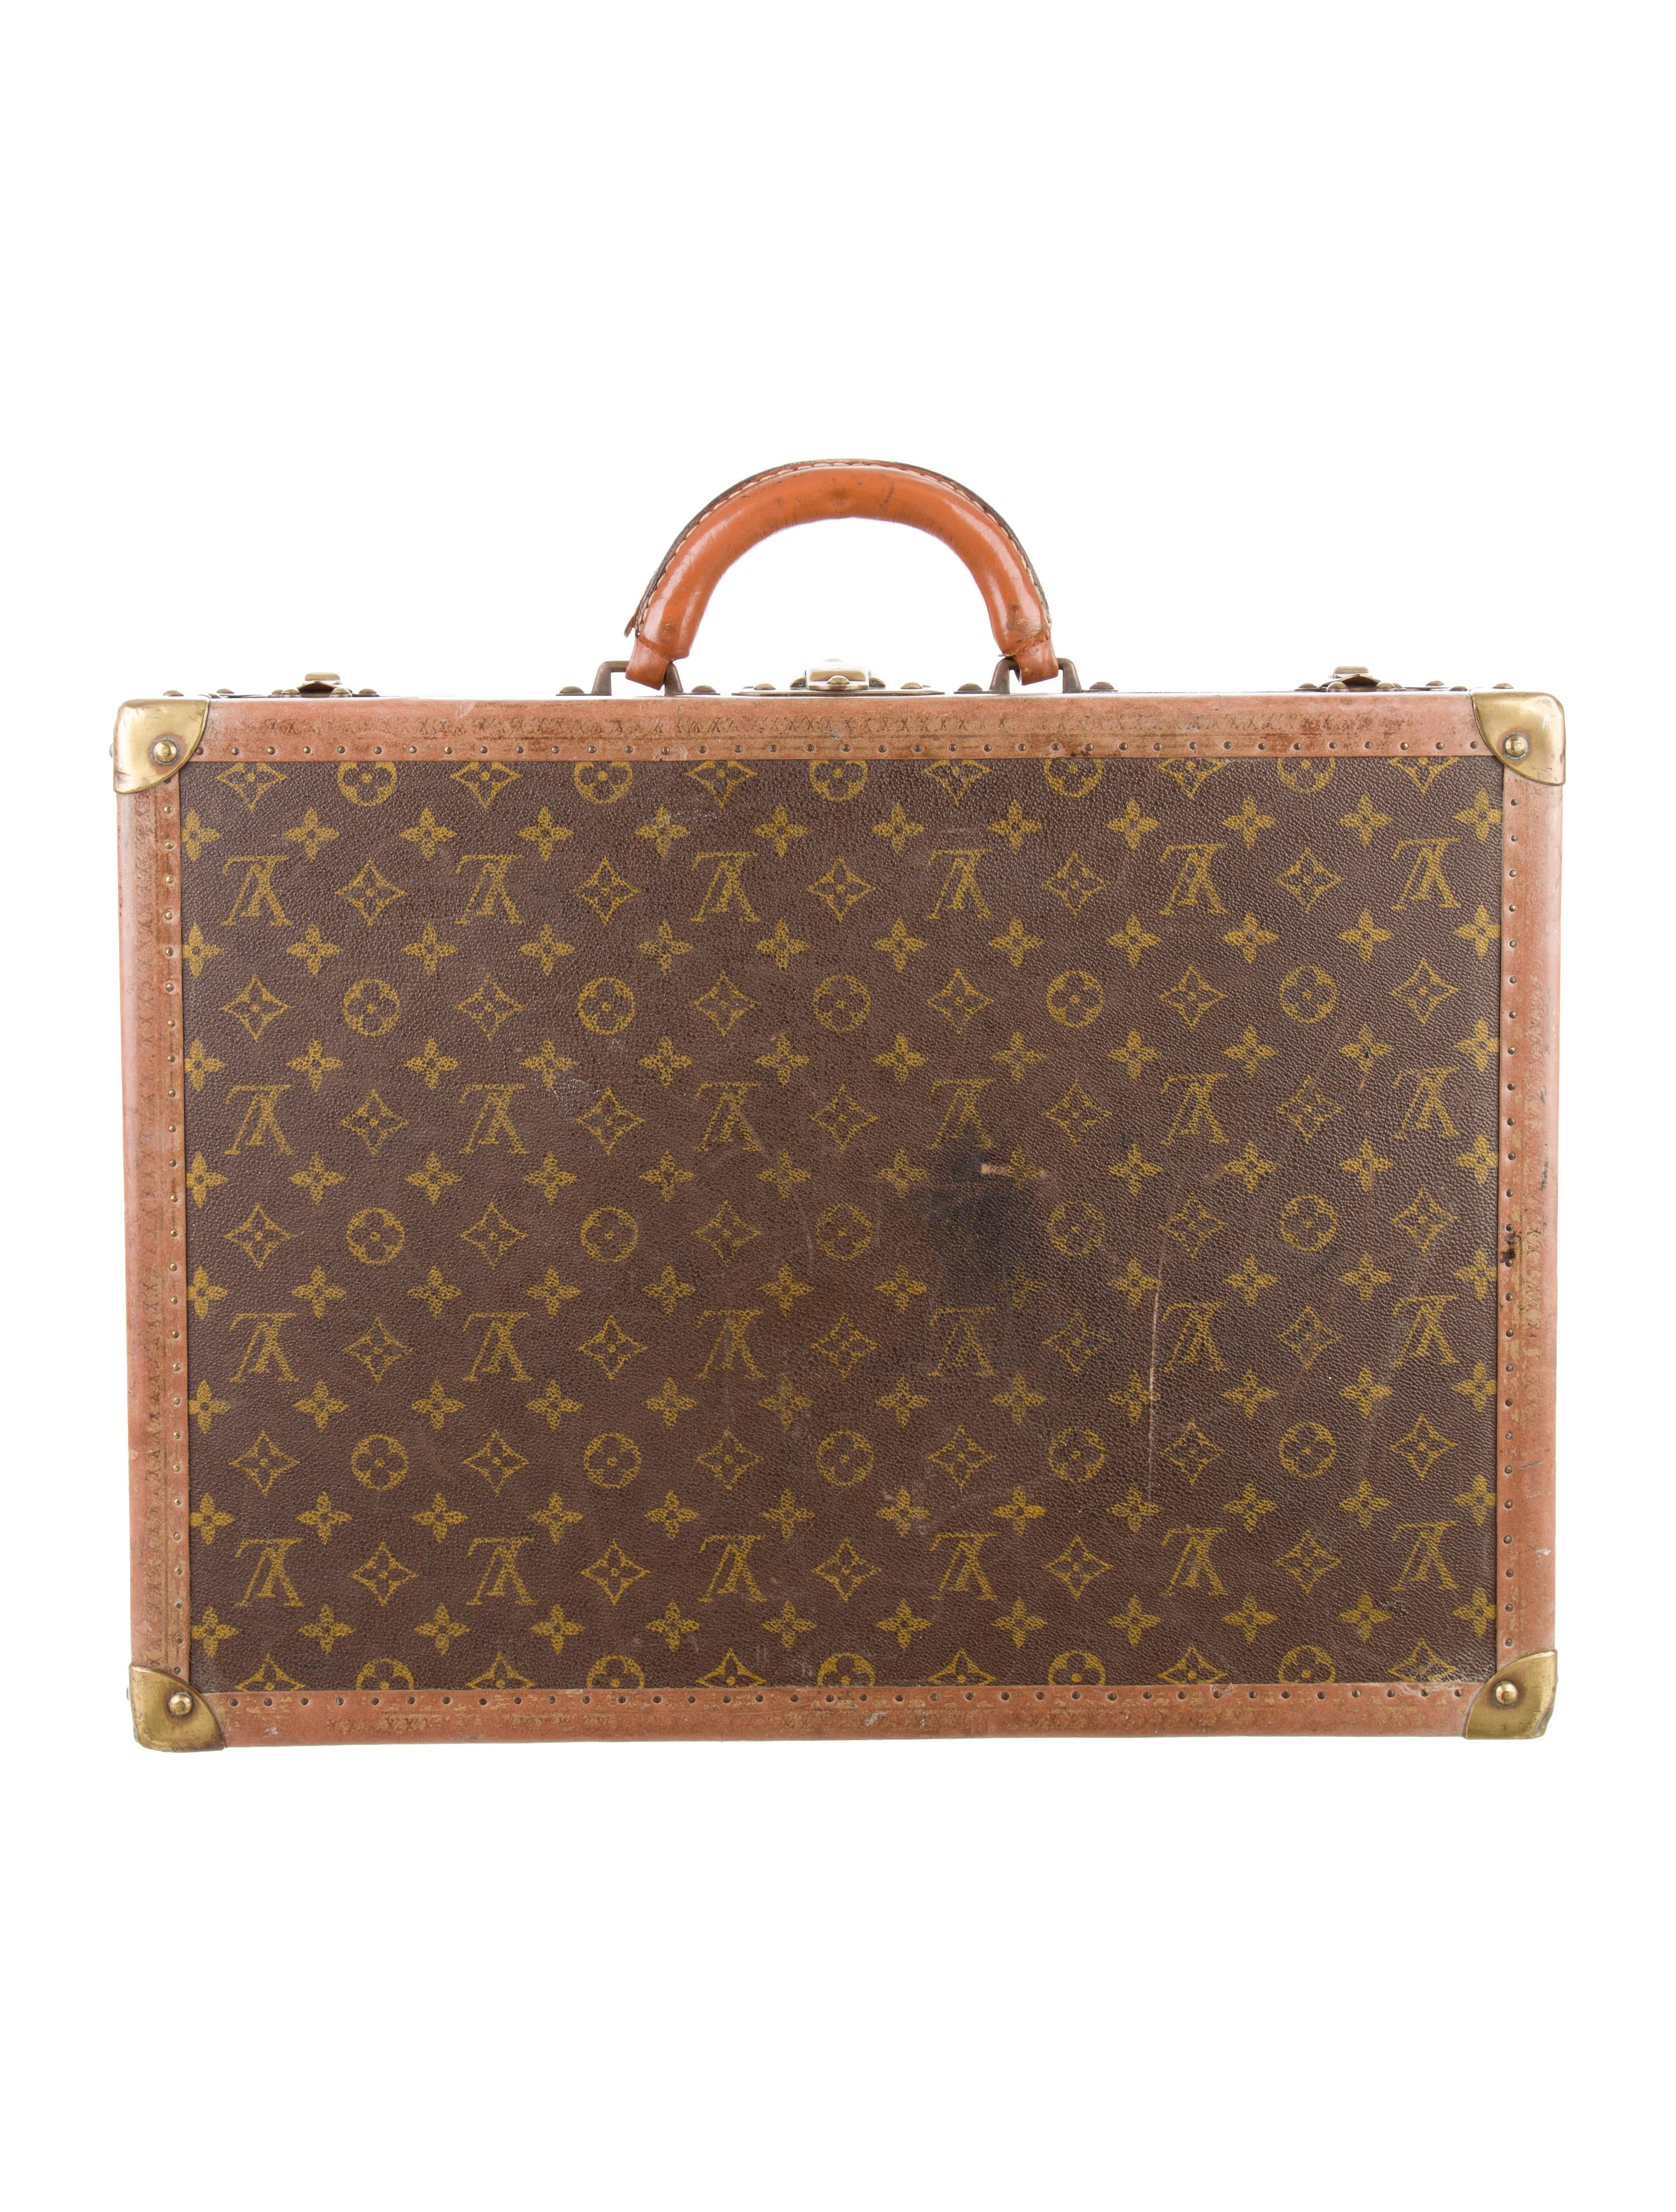 louis vuitton monogram alzer 60 small trunk handbags lou113218 the realreal. Black Bedroom Furniture Sets. Home Design Ideas